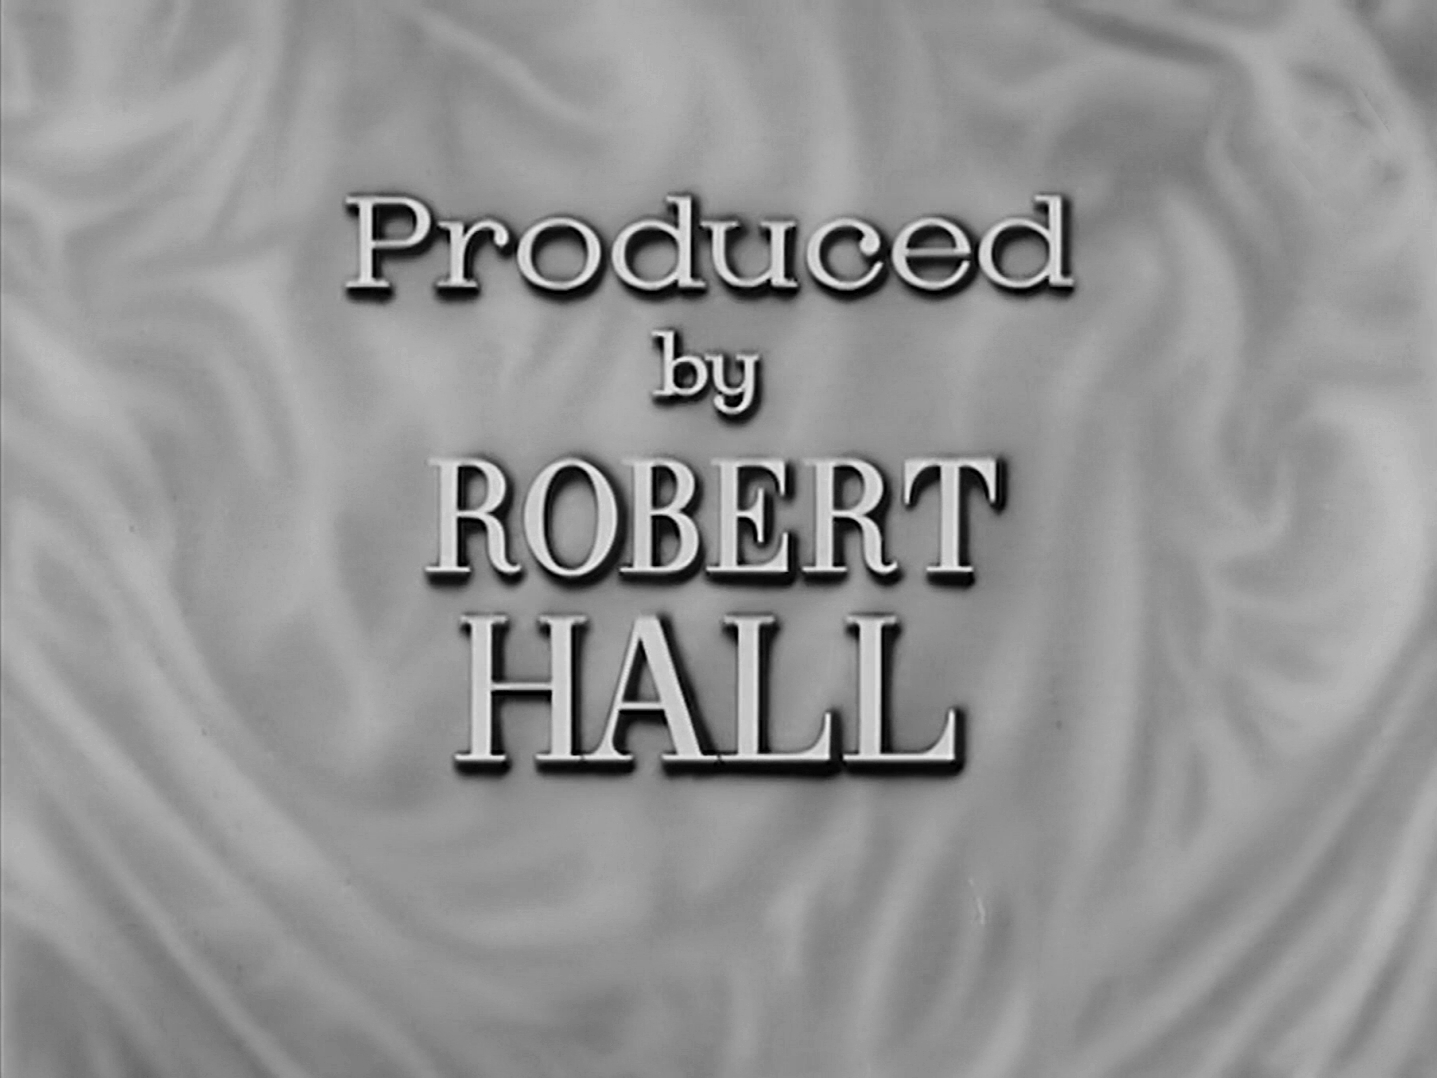 Main title from Small Hotel (1957) (11). Produced by Robert Hall